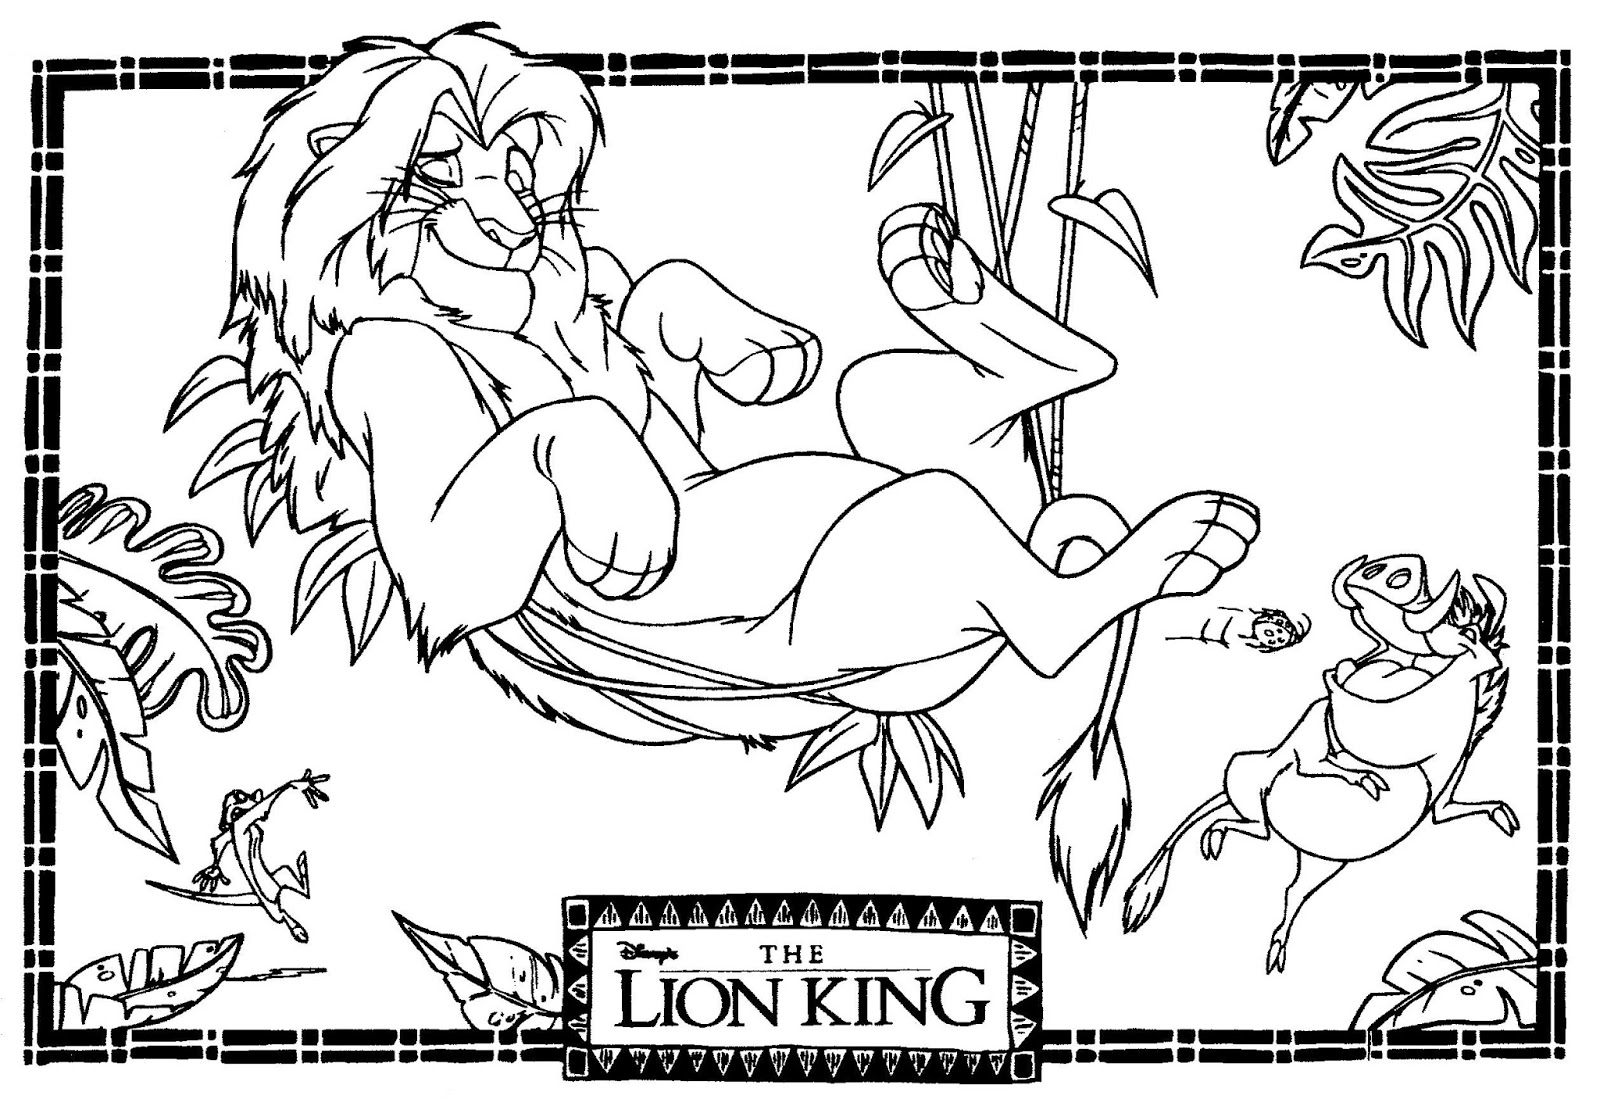 Mostly Paper Dolls Too!: THE LION KING Movie Coloring Contest